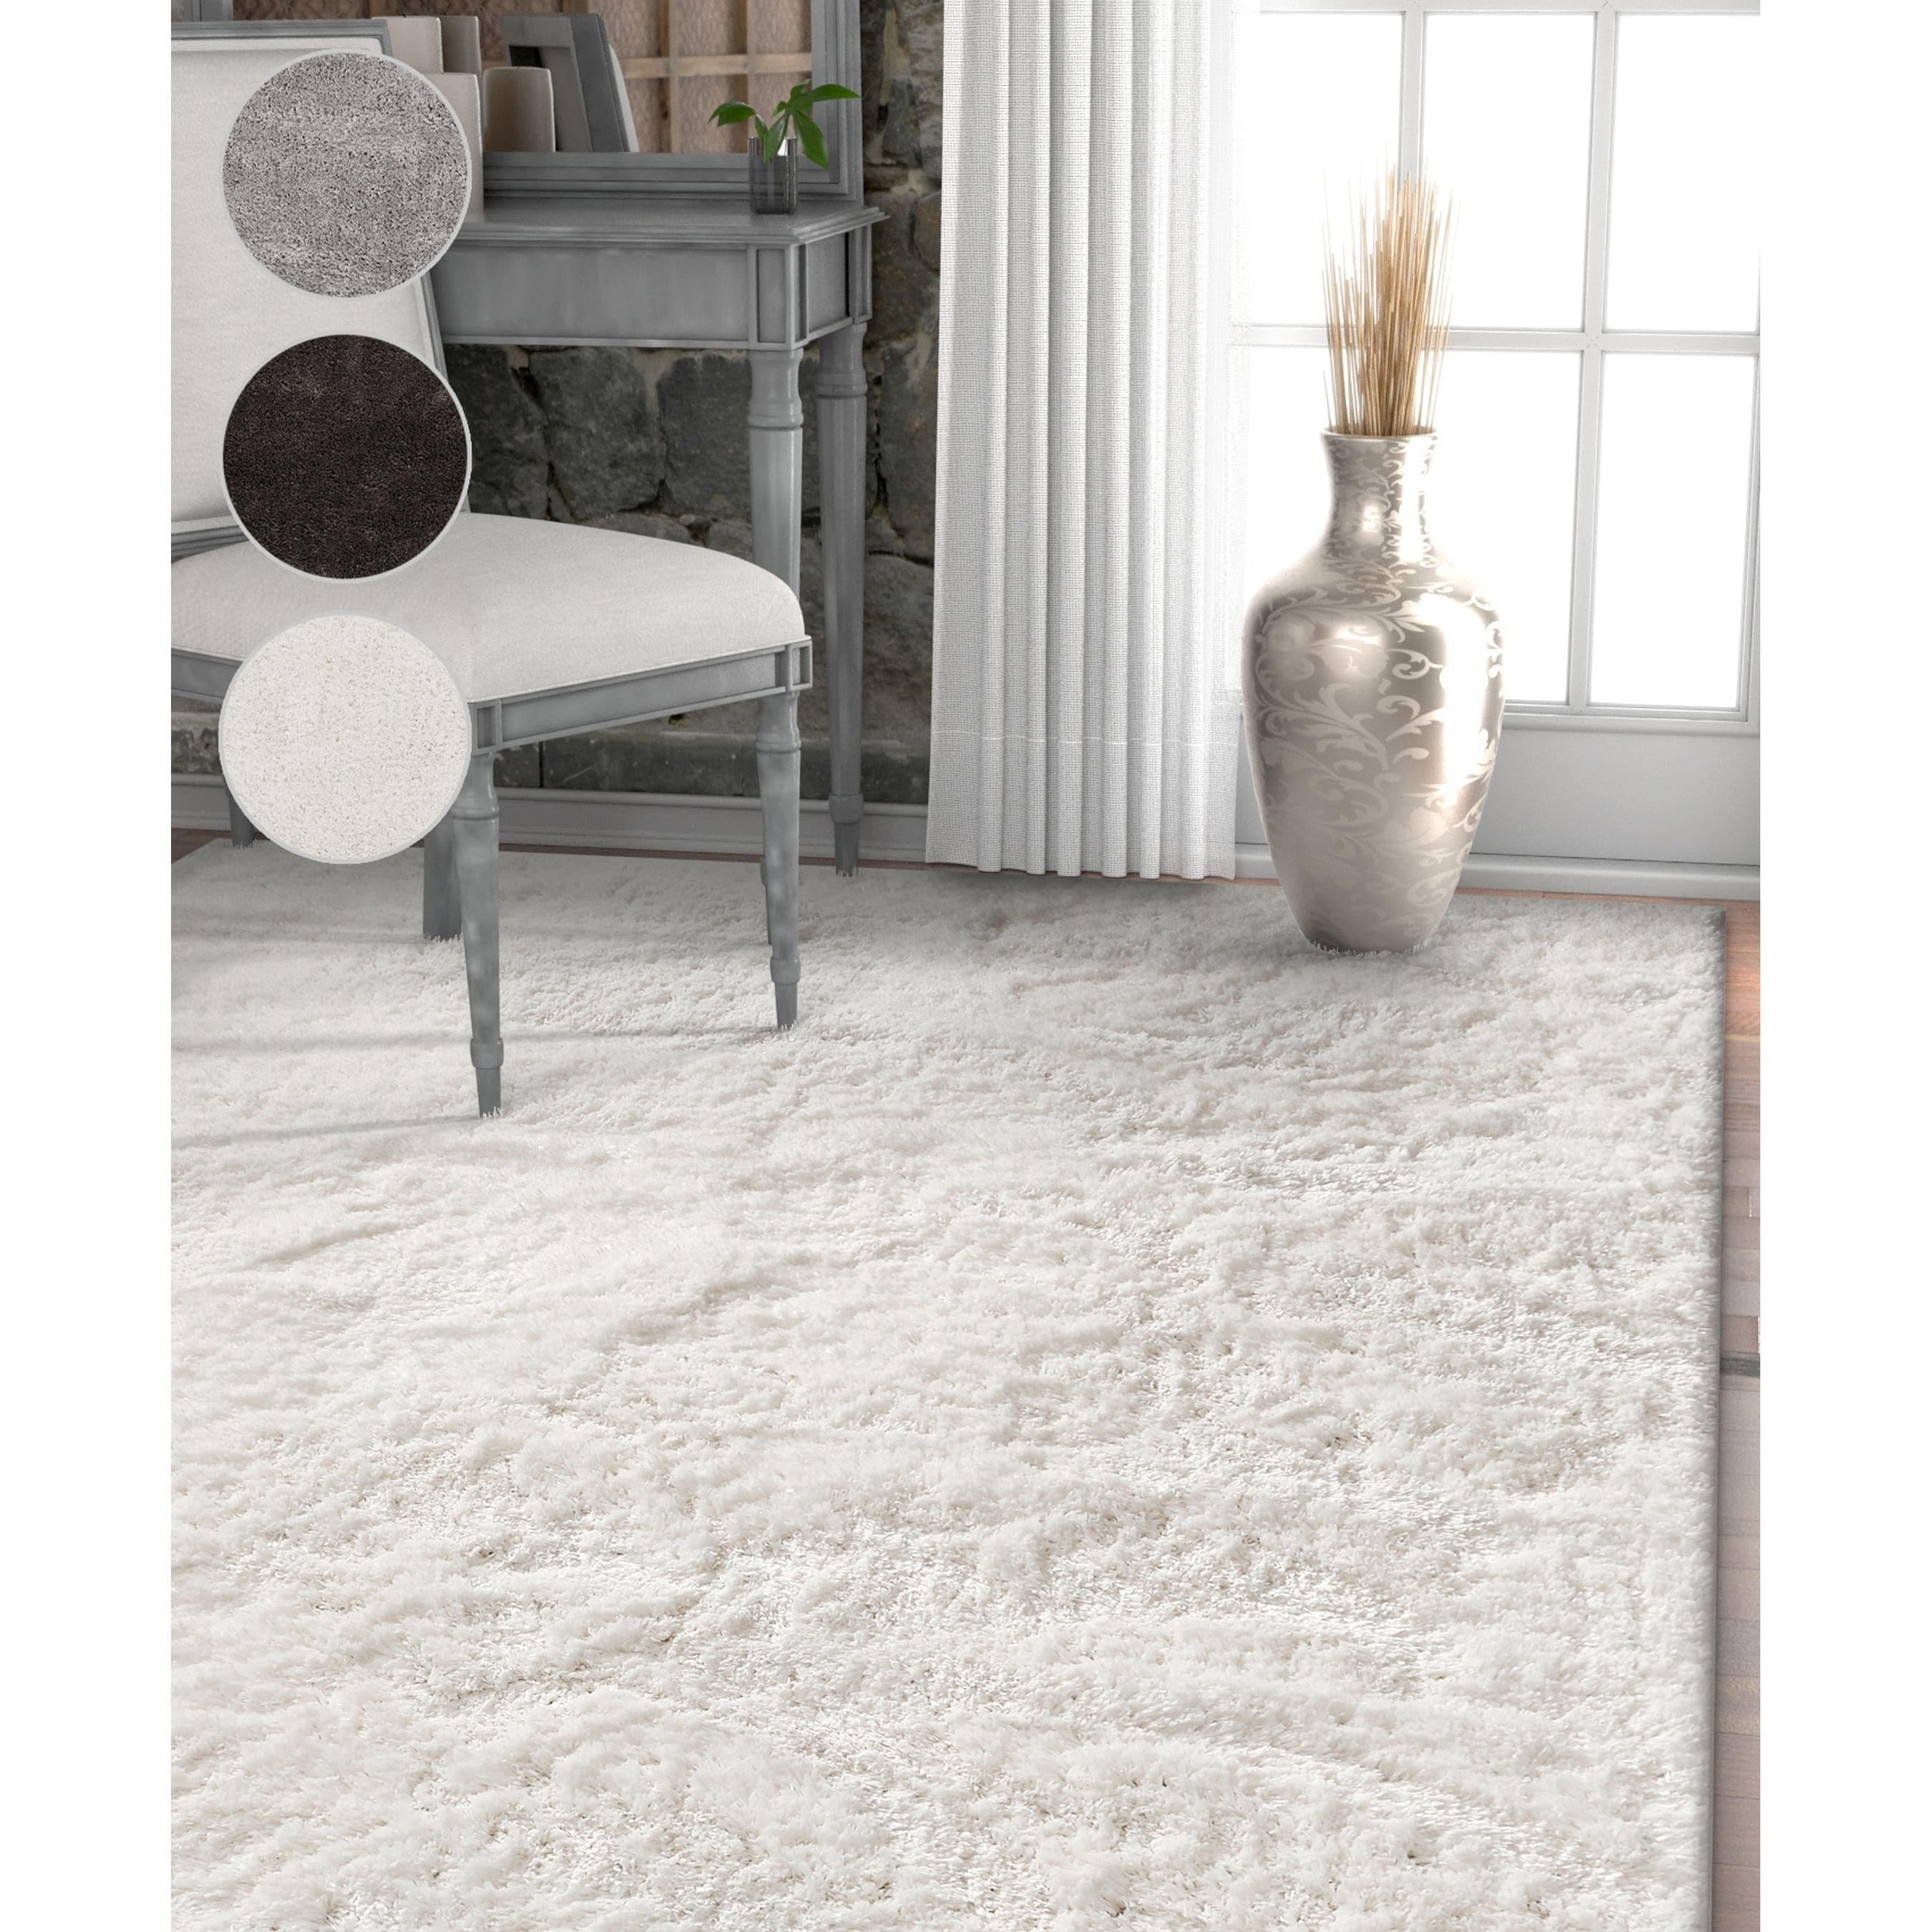 Well Woven Modern Solid Soft Greysilverwhite Microfiber Area Rug (710